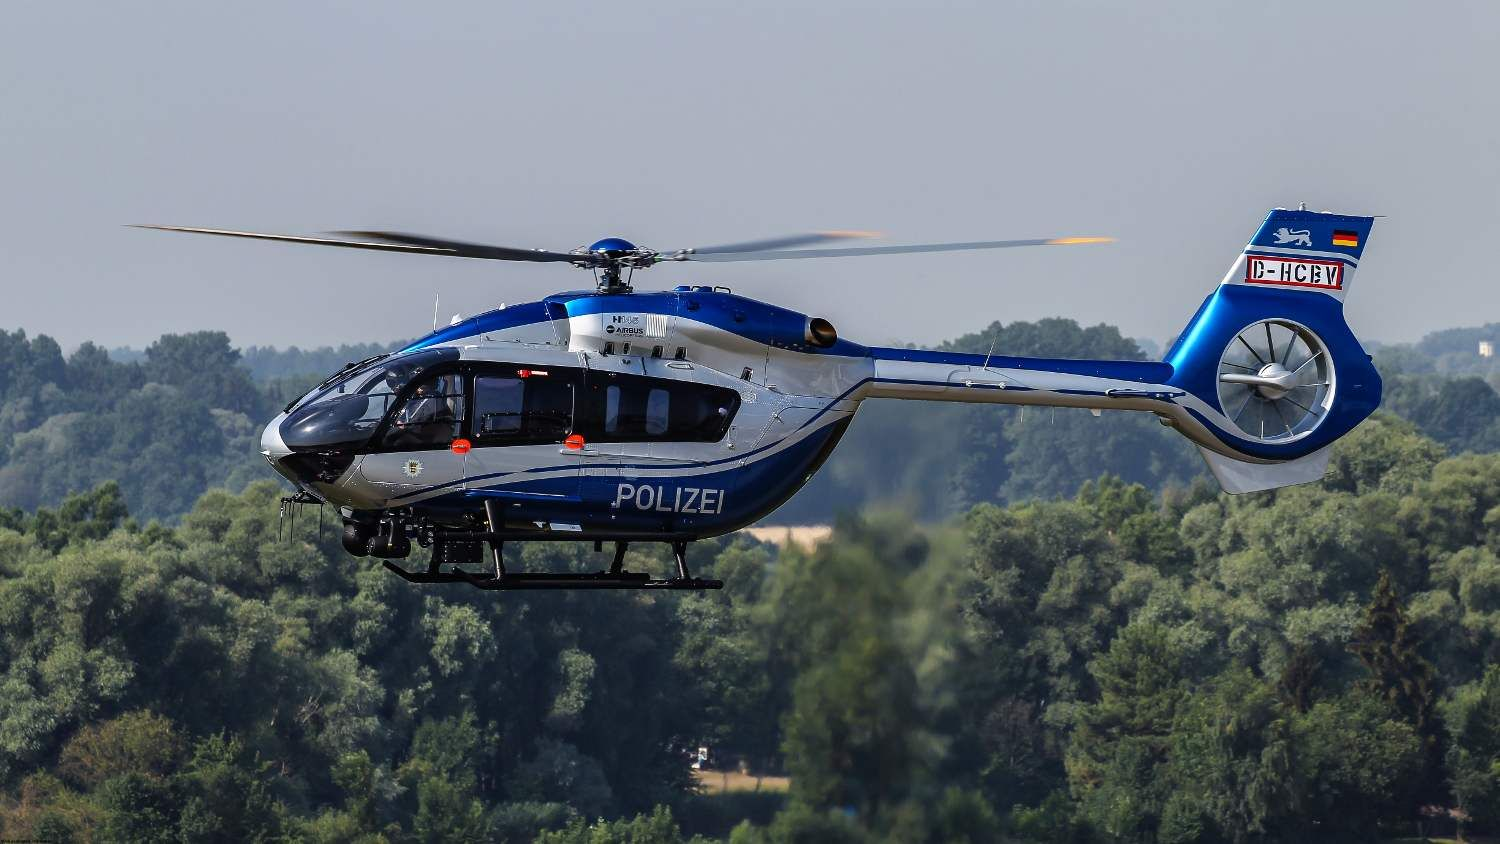 airbus helicopters donauwörth with Modernster Polizeihubschrauber H145 Fliegt In Baden Wuerttemberg on 653380 together with First Picture Nh90 Sea Lion For Germany also Tmb 2016 Airbus Helicopter Deutschland In Donauworth together with H145 likewise 428284.